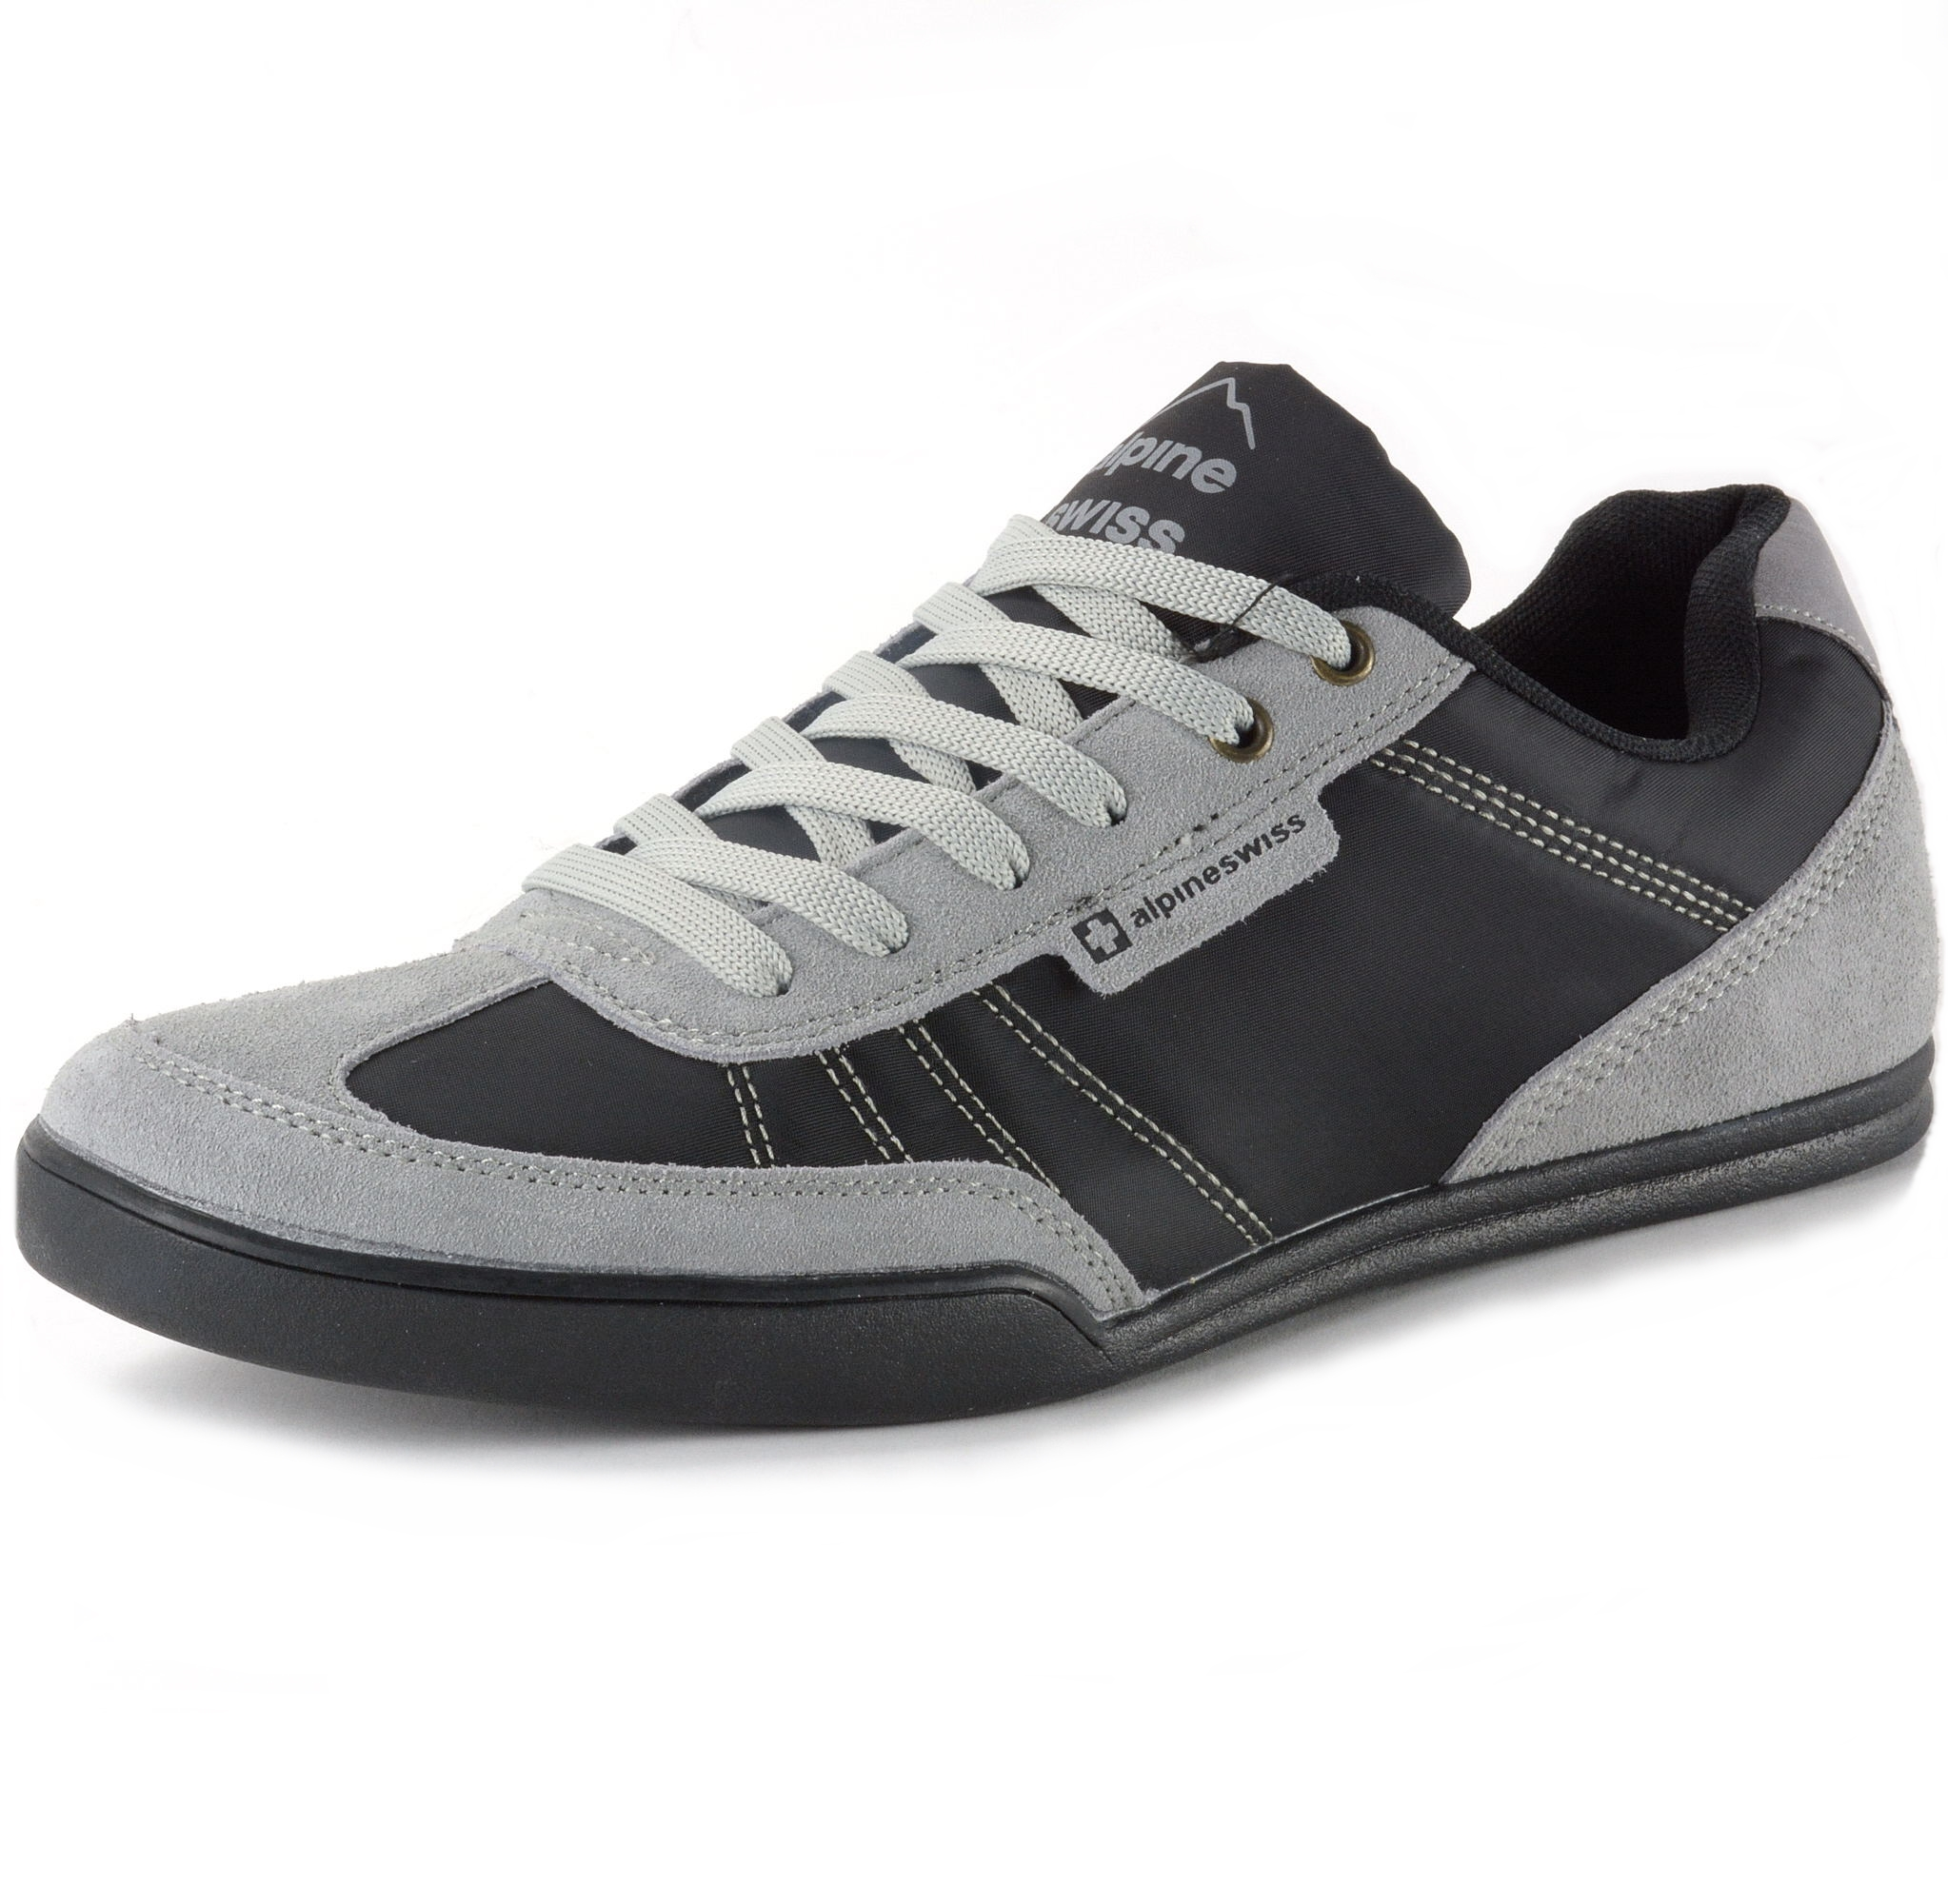 Alpine Swiss Marco Men's Fashion Sneakers Retro Tennis Shoes Athletic Trainers